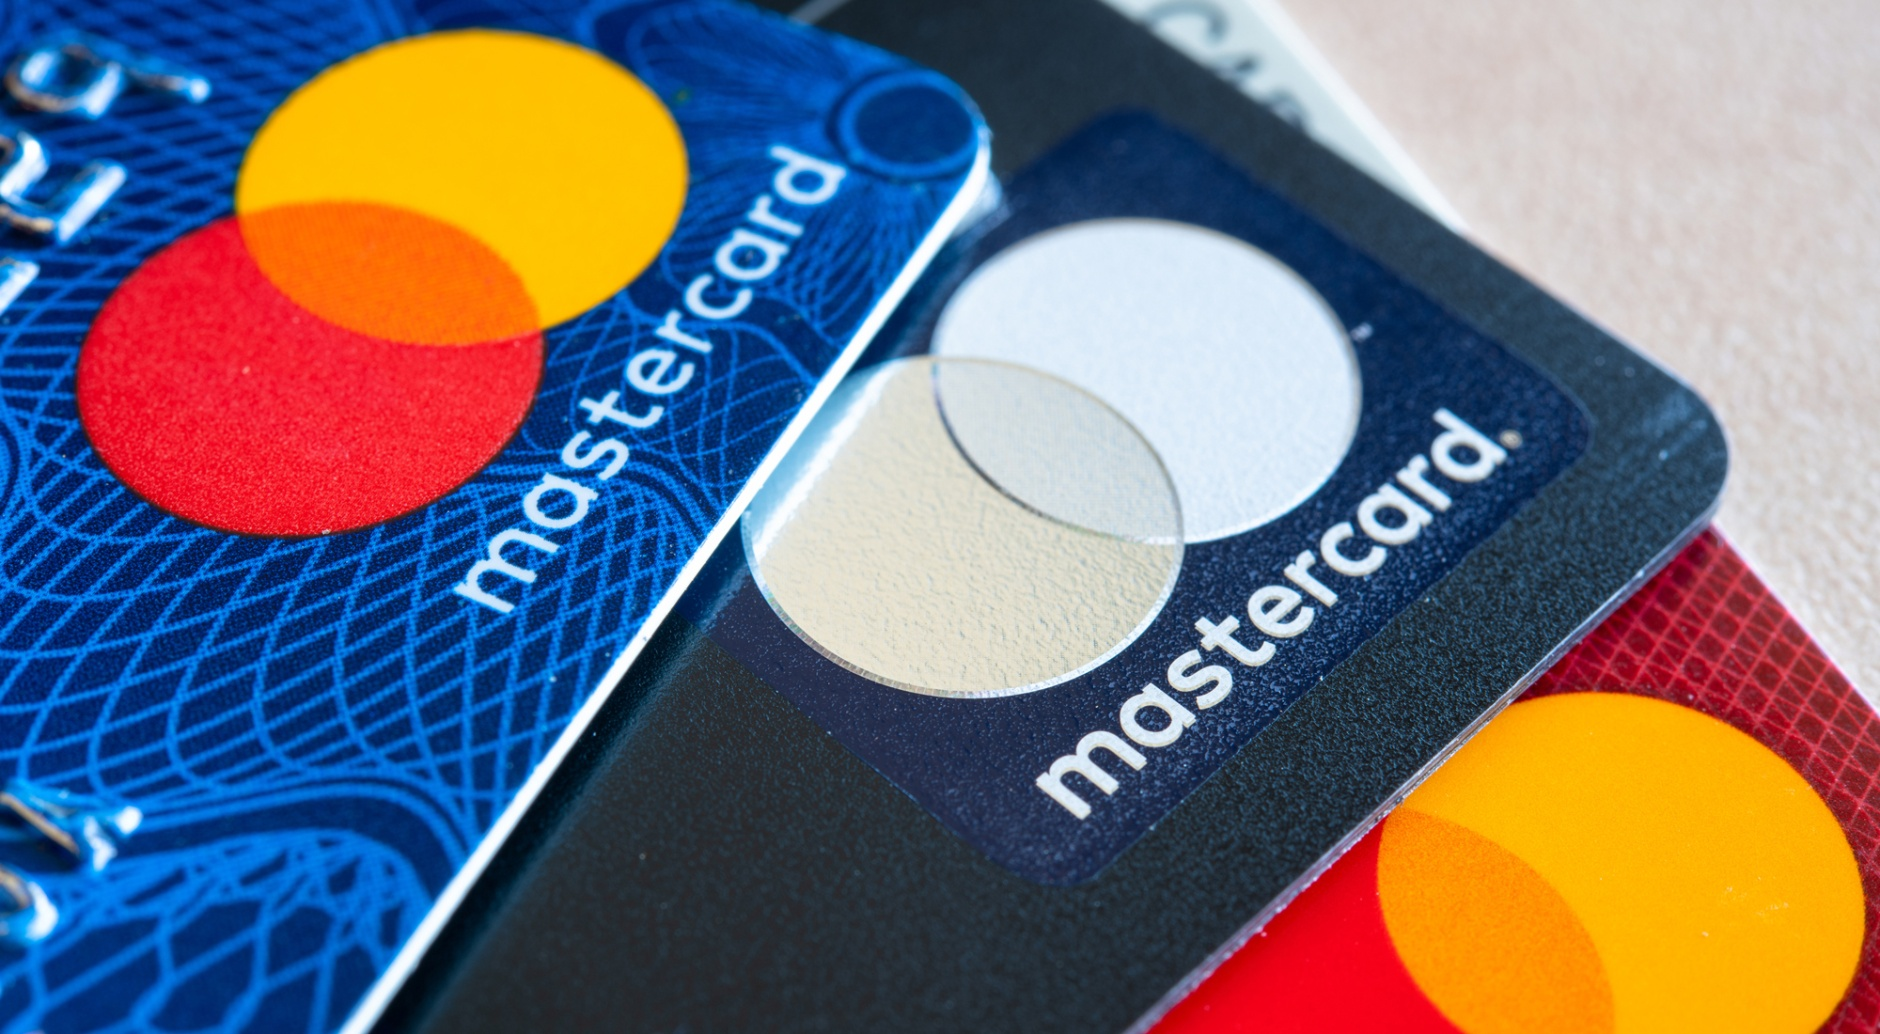 Mastercard Updates Requirements for Credit Card Payments to Porn Sites